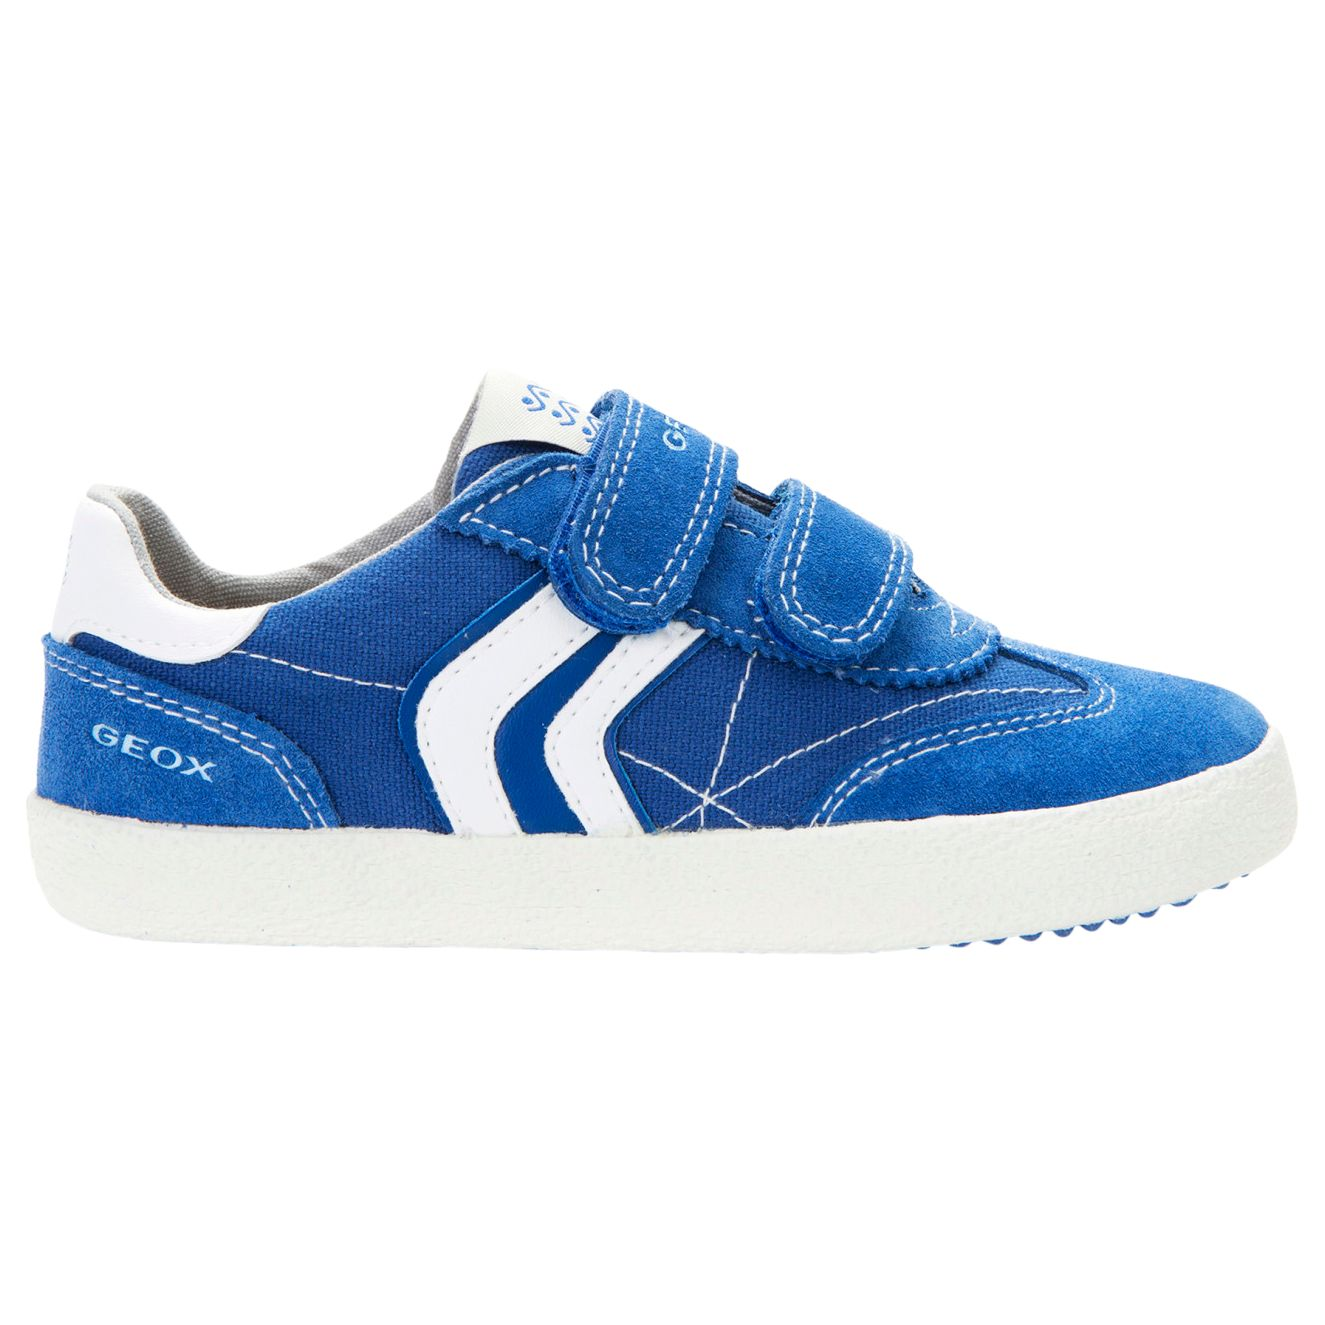 Geox Geox Children's Kiwi Double Rip-Tape Casual Shoes, Royal Blue/White